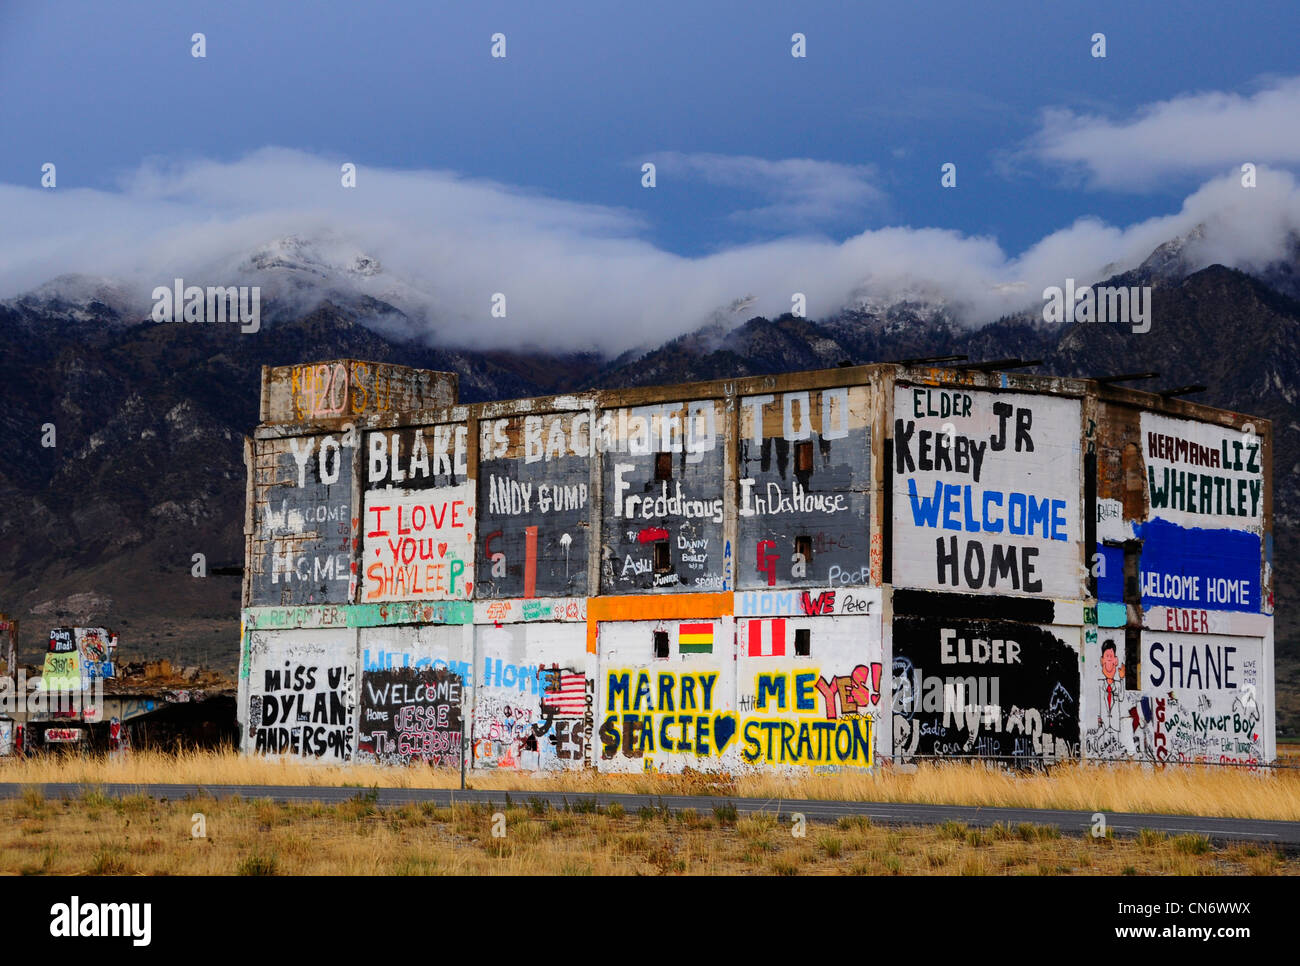 Graffiti on abandoned building along Interstate 15 in ...